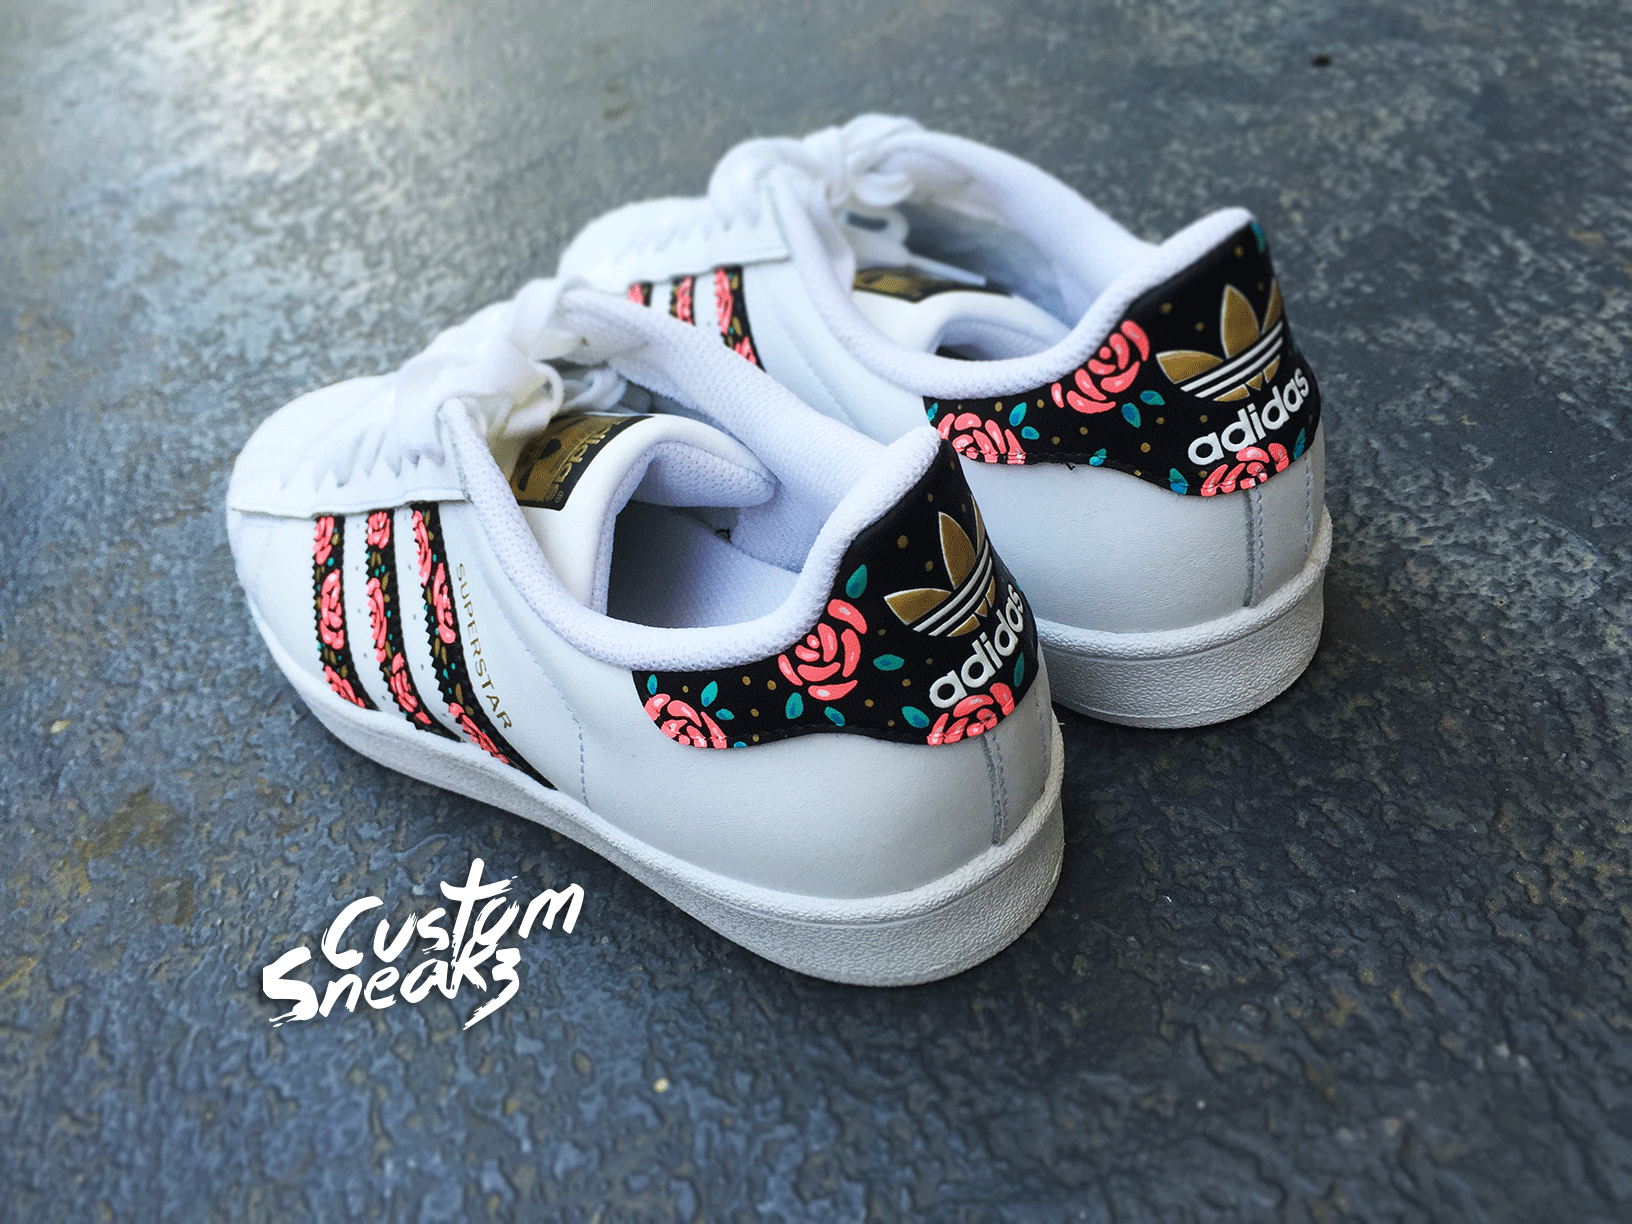 Fonkelnieuw Custom Adidas Superstar for men and women, Adidas custom Hand TD-37